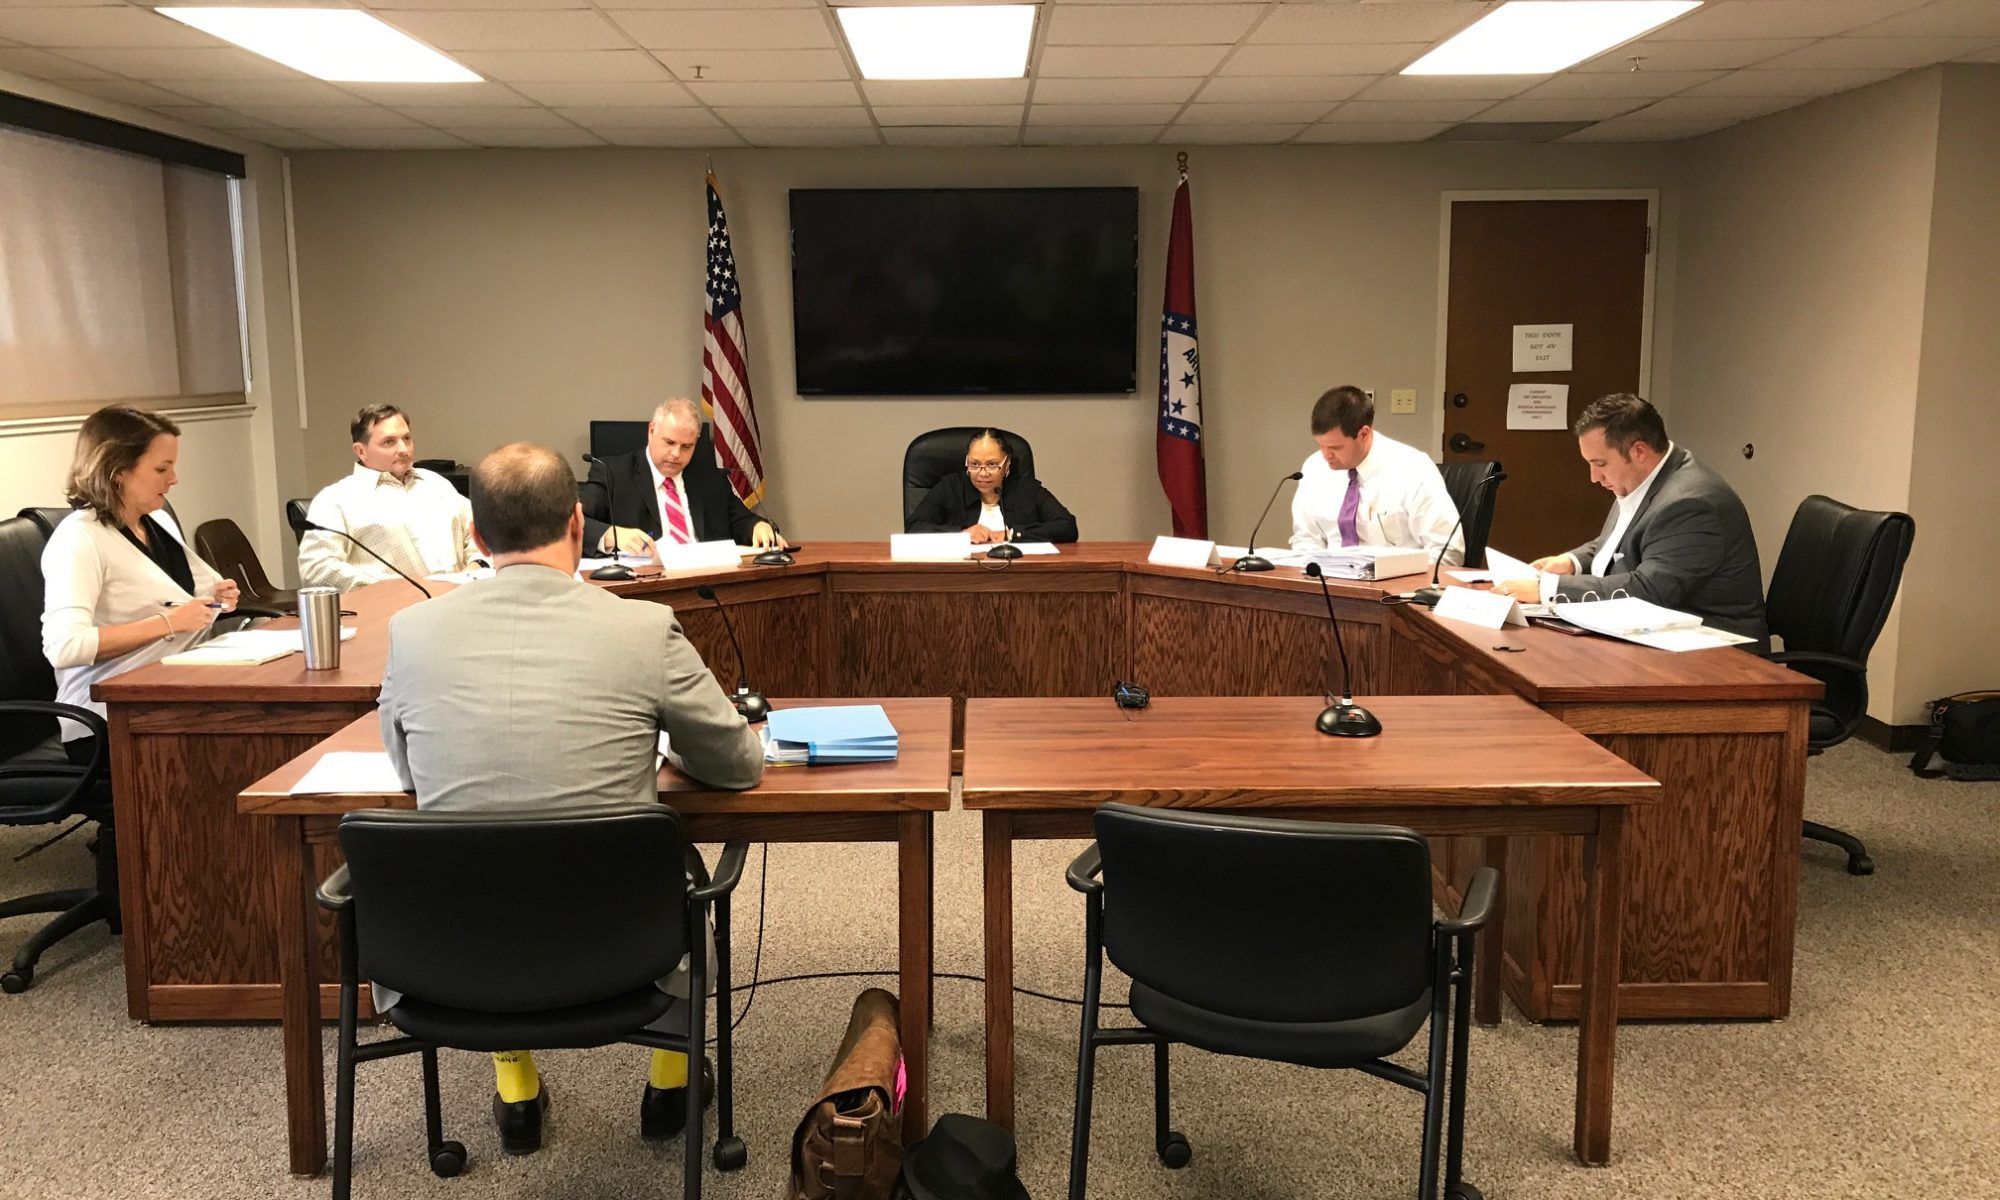 Updates from the May 30th Medical Marijuana Commission Meeting